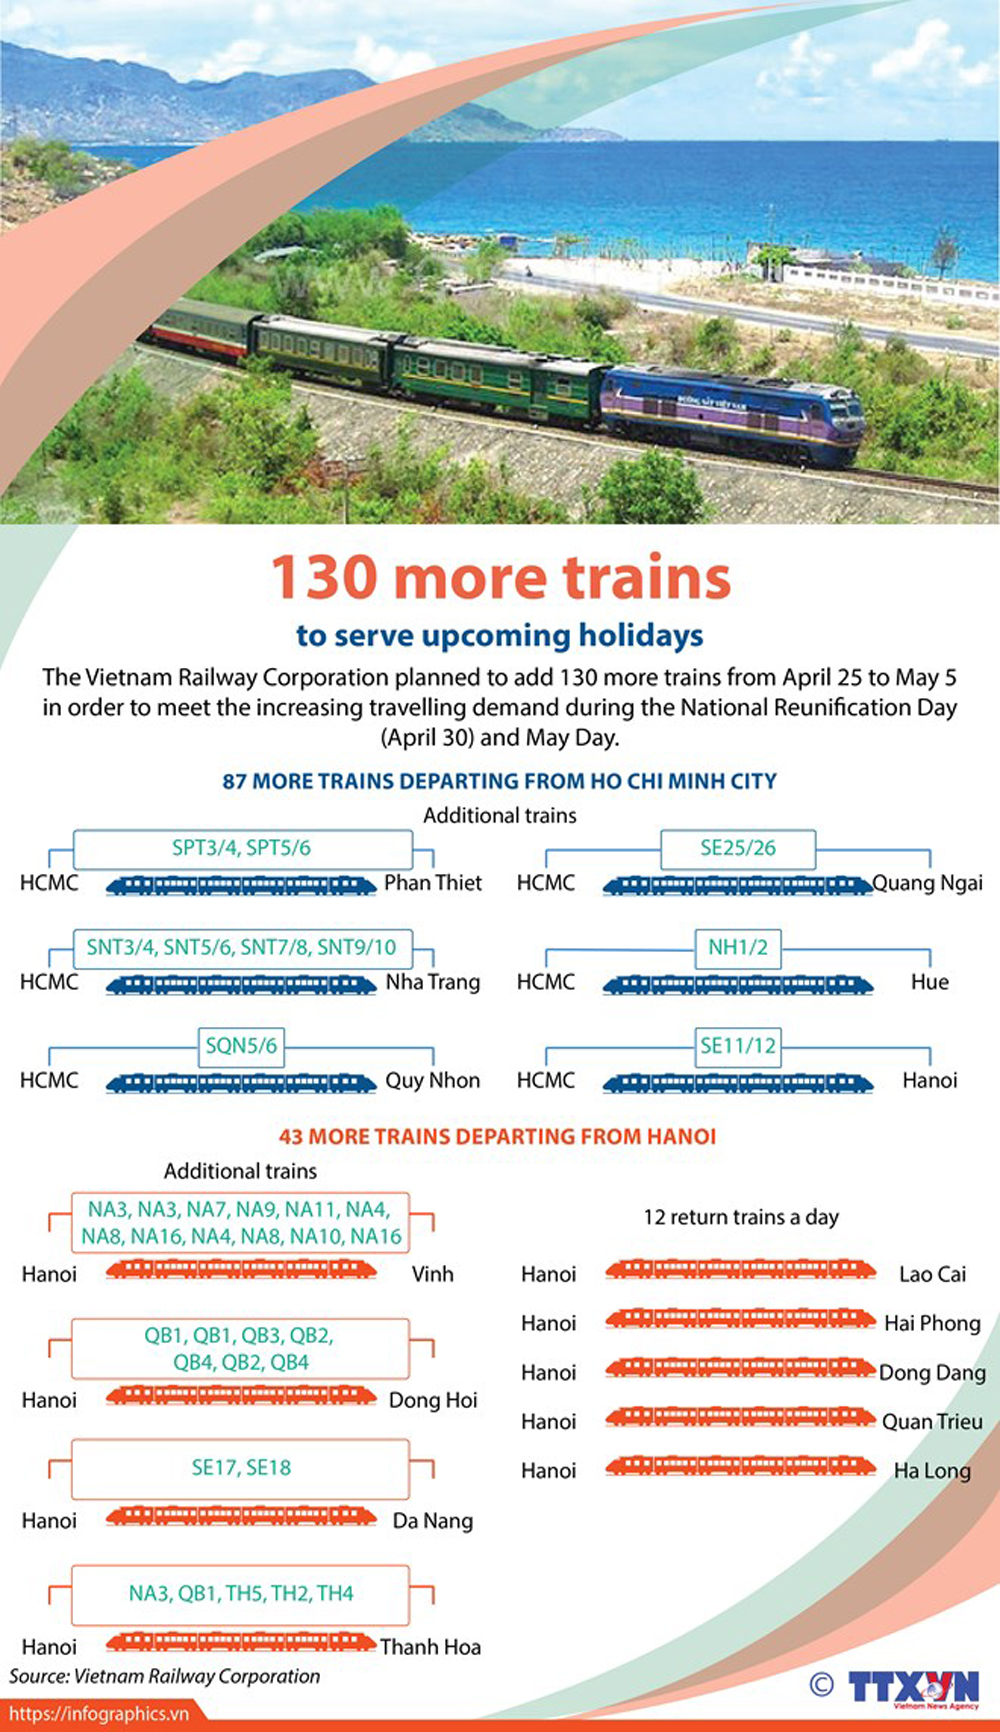 130 more trains, upcoming holidays, Vietnam Railway Corporation, National Reunification Day, April 30, May Day